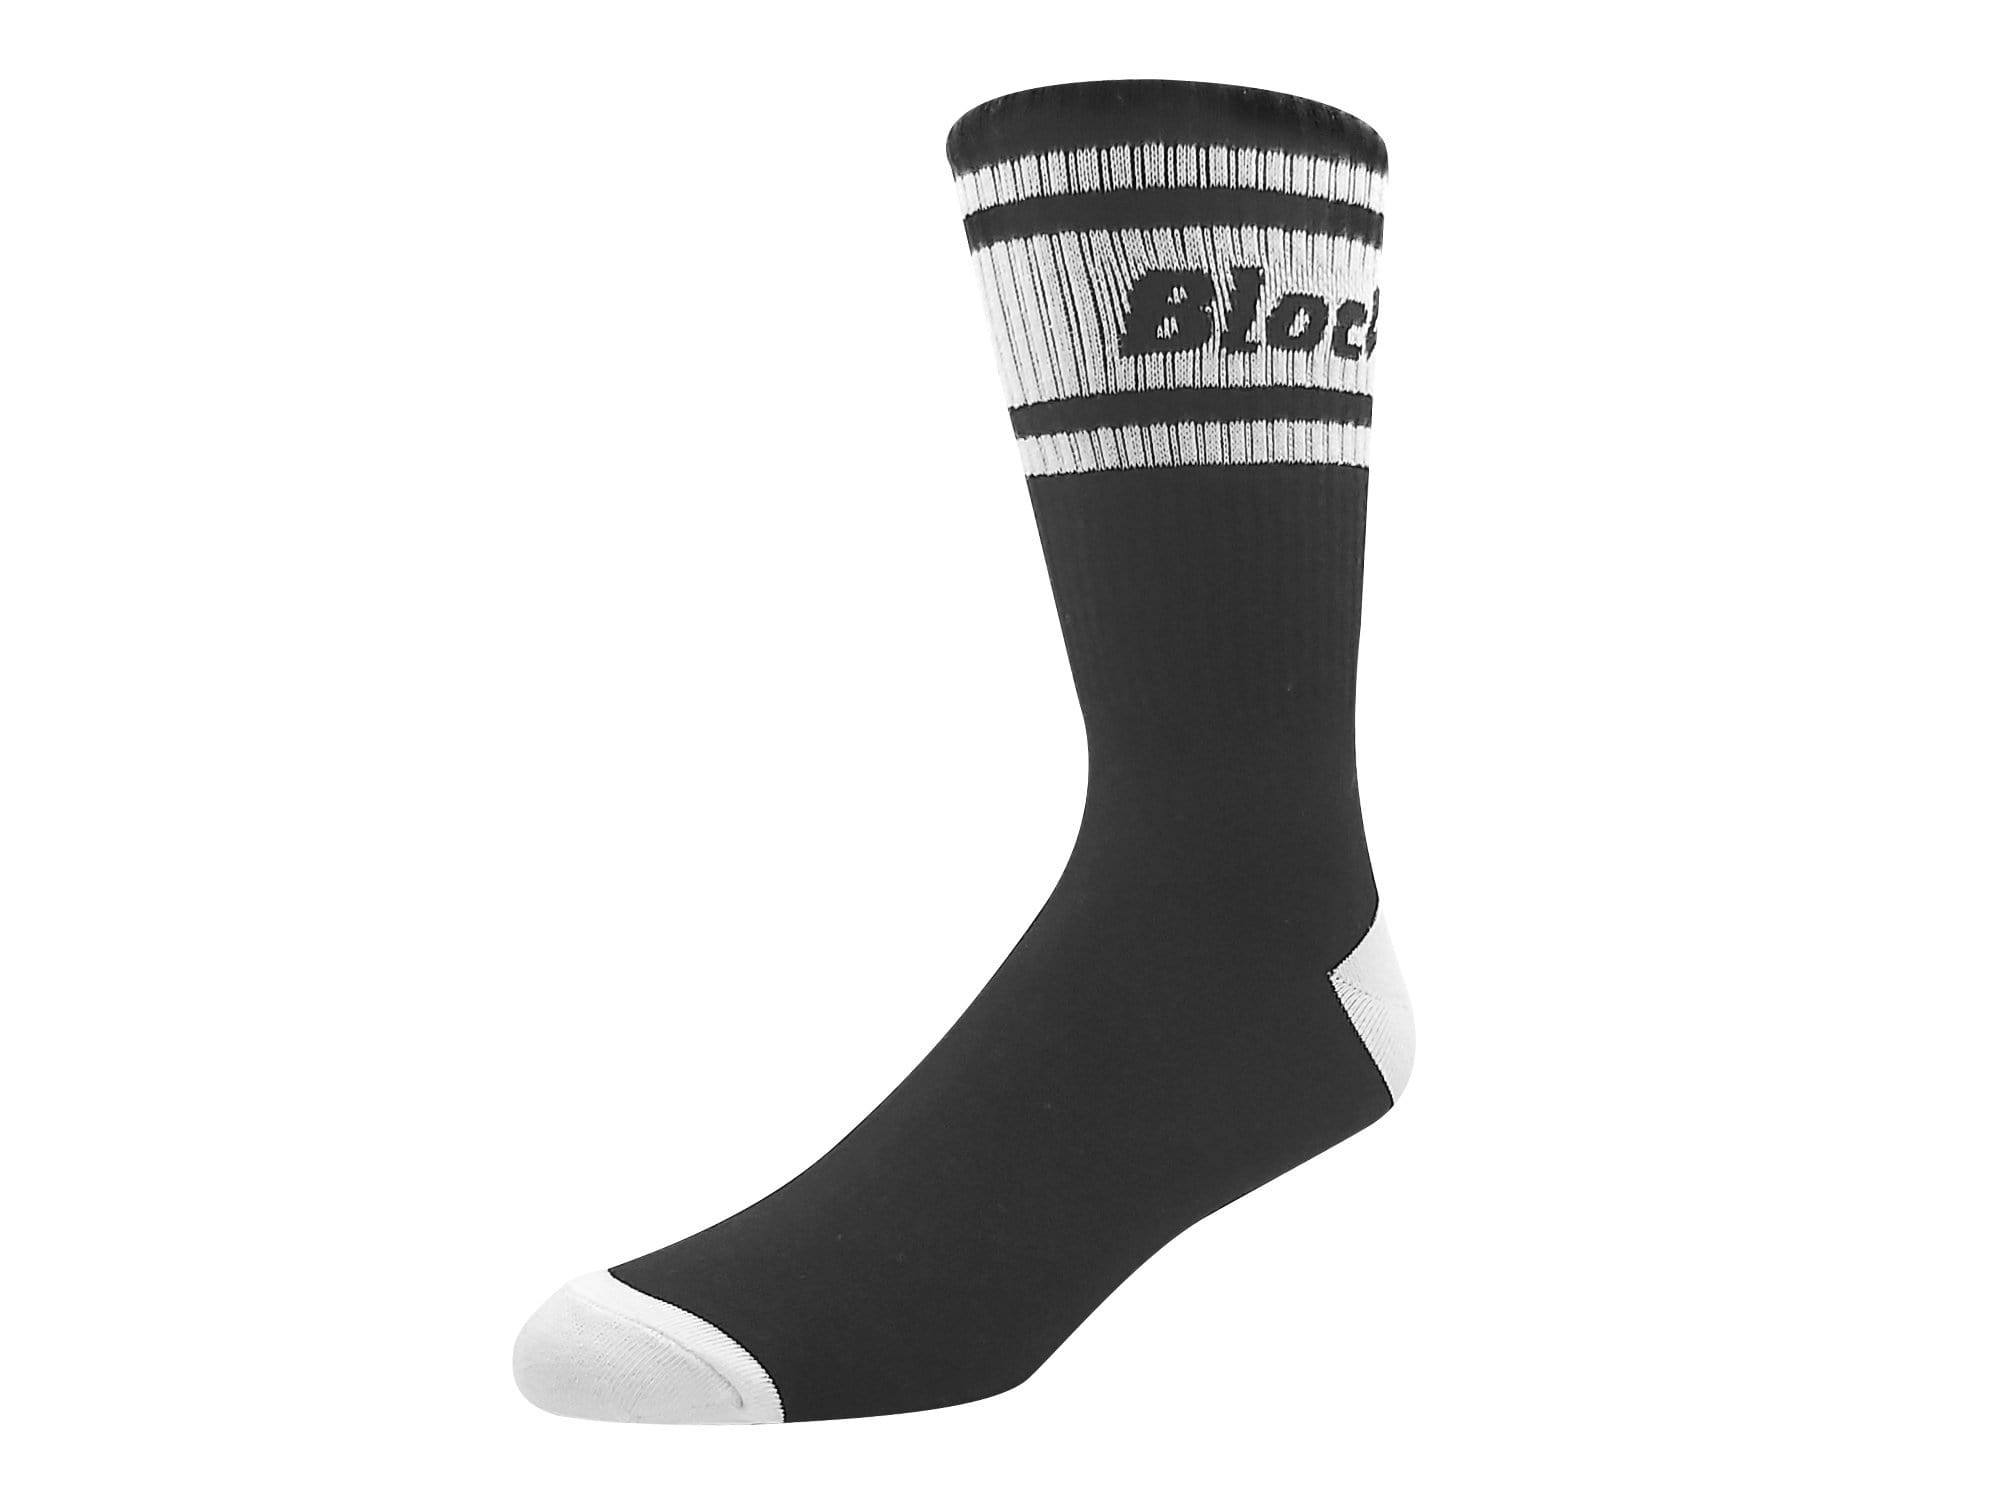 Calcetines Block Socks Pack 3 Bla/Neg/Gri Hombre Multicolor